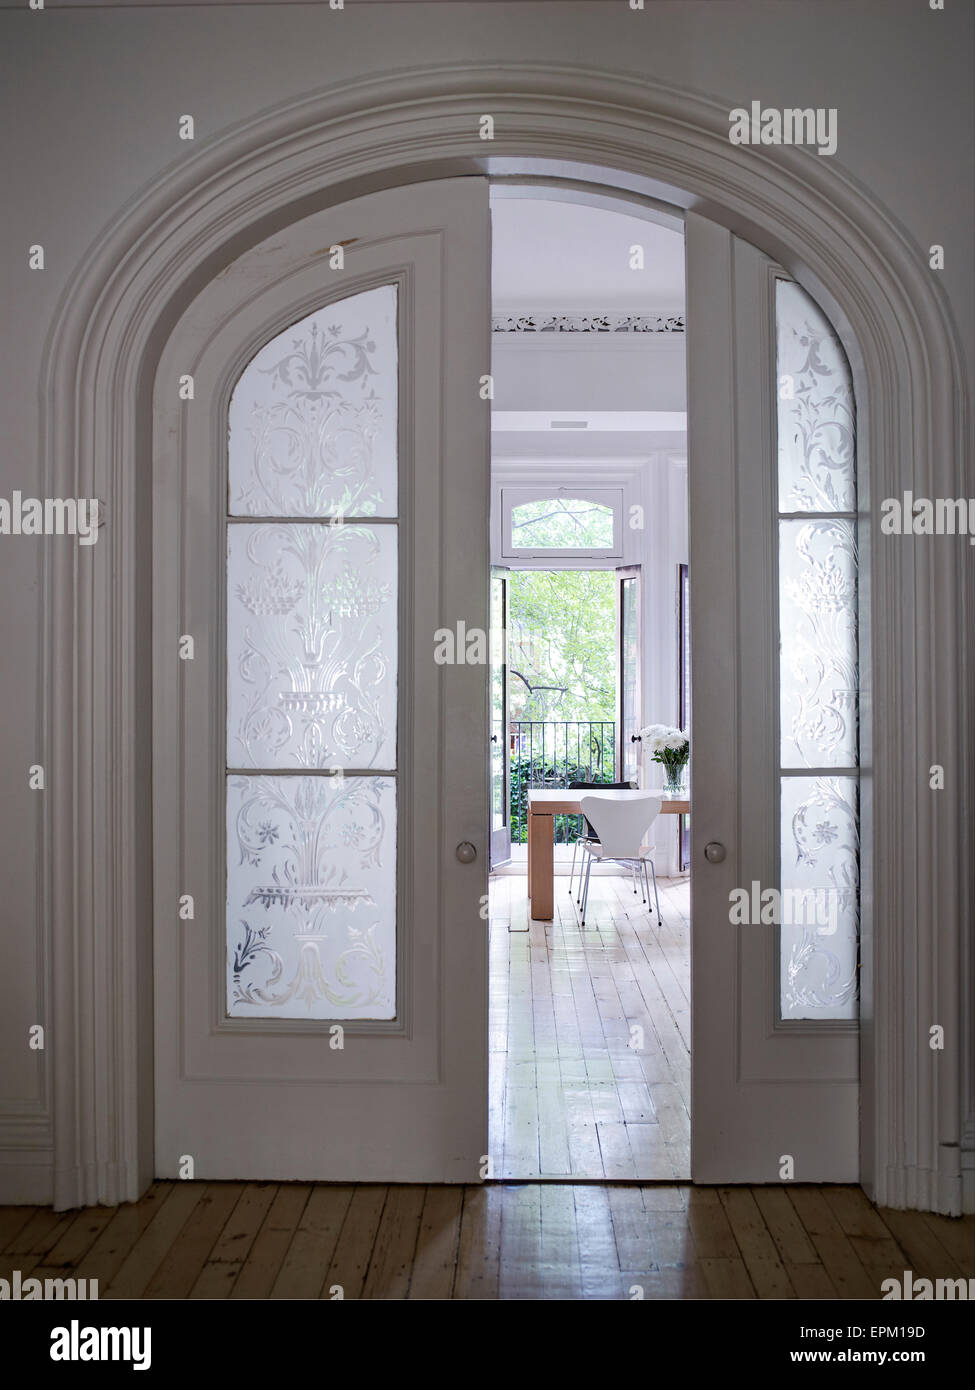 Wood and glass sliding doors in arched doorframe, Chelsea Townhouse, New York, USA - Stock Image